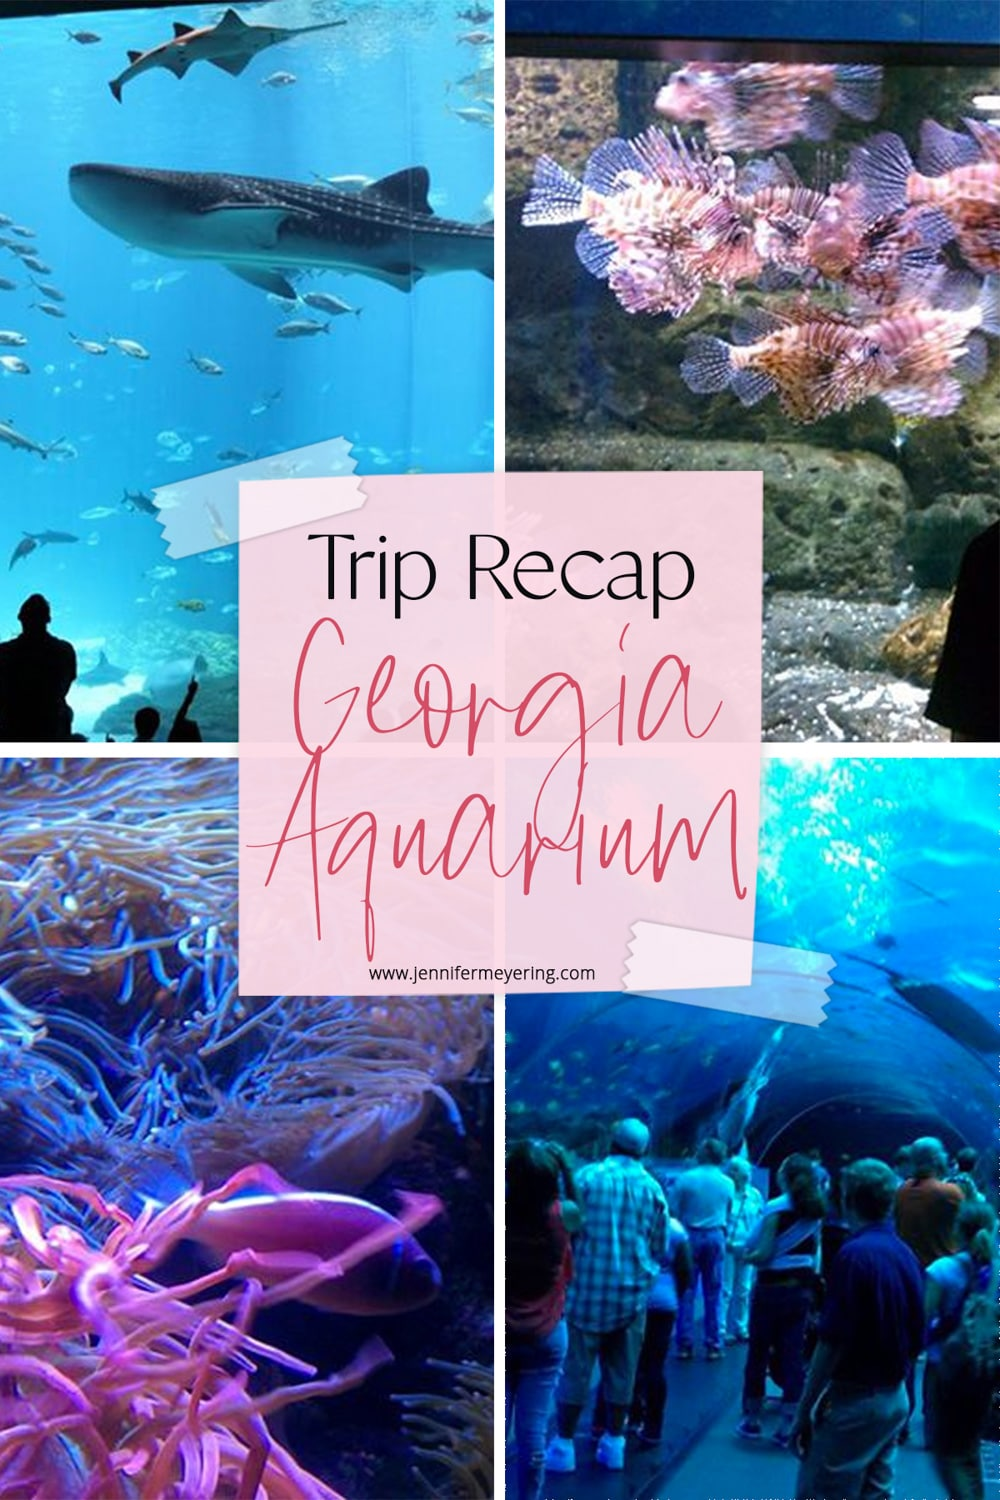 Trip Recap: The Georgia Aquarium